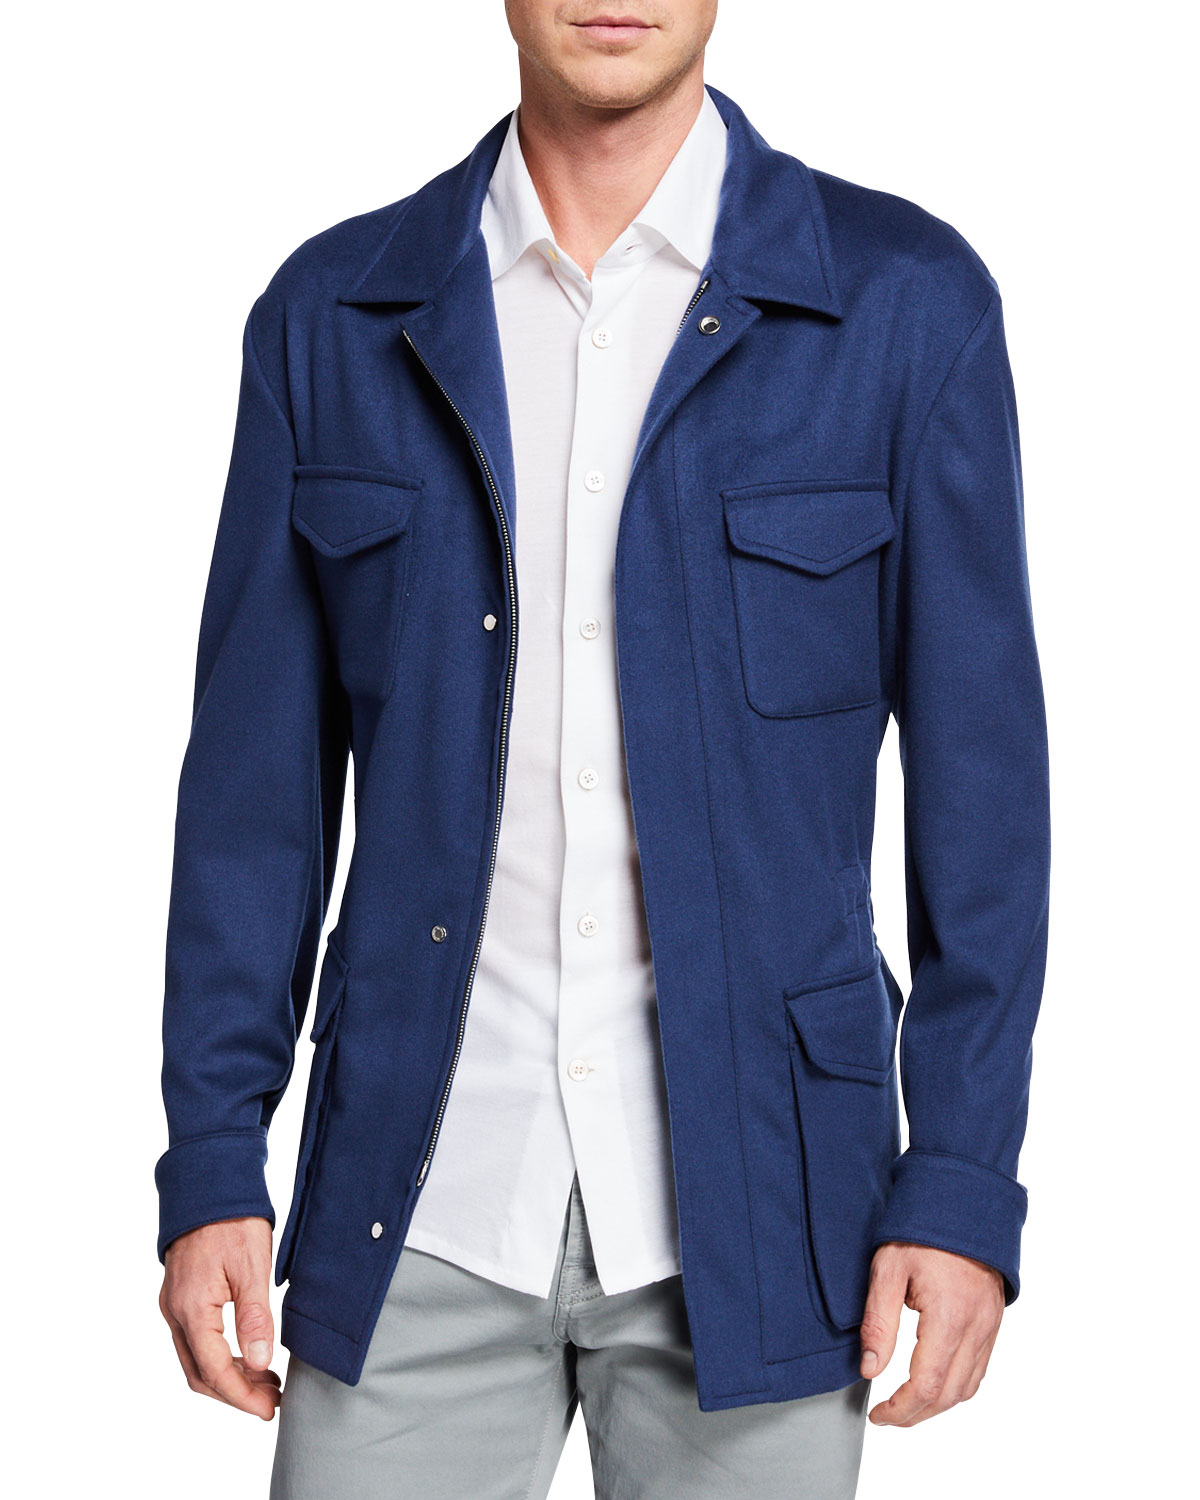 Kiton Men S Cashmere Safari Jacket Neiman Marcus